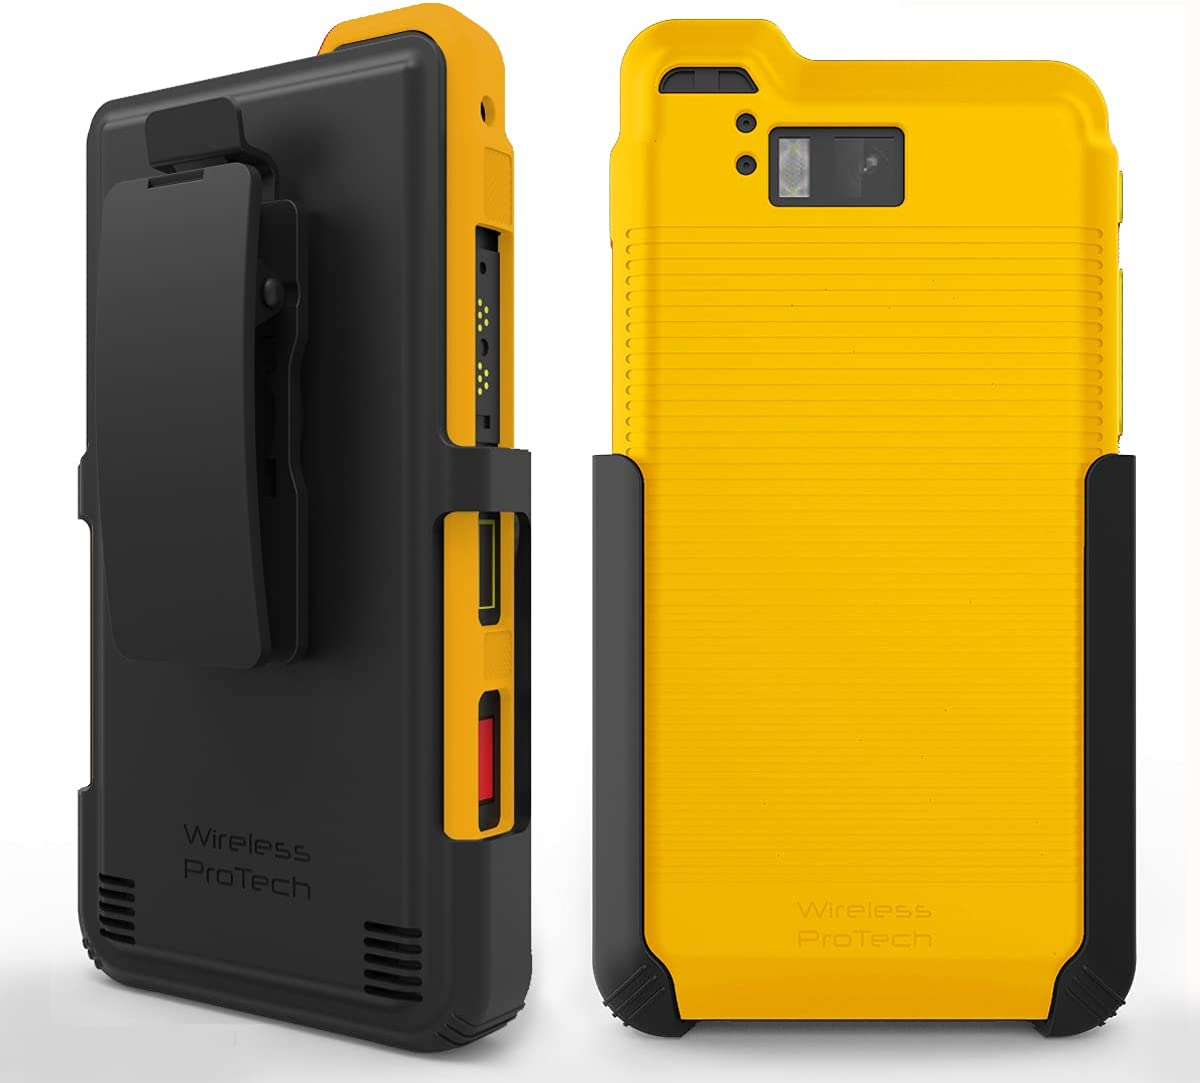 Wireless ProTech Case with Clip Compatible with Sonim XP8 Phone Model XP8800. Heavy Duty Rotating Belt Clip Holster and Durable Flexible Protective Case Combo (Yellow)